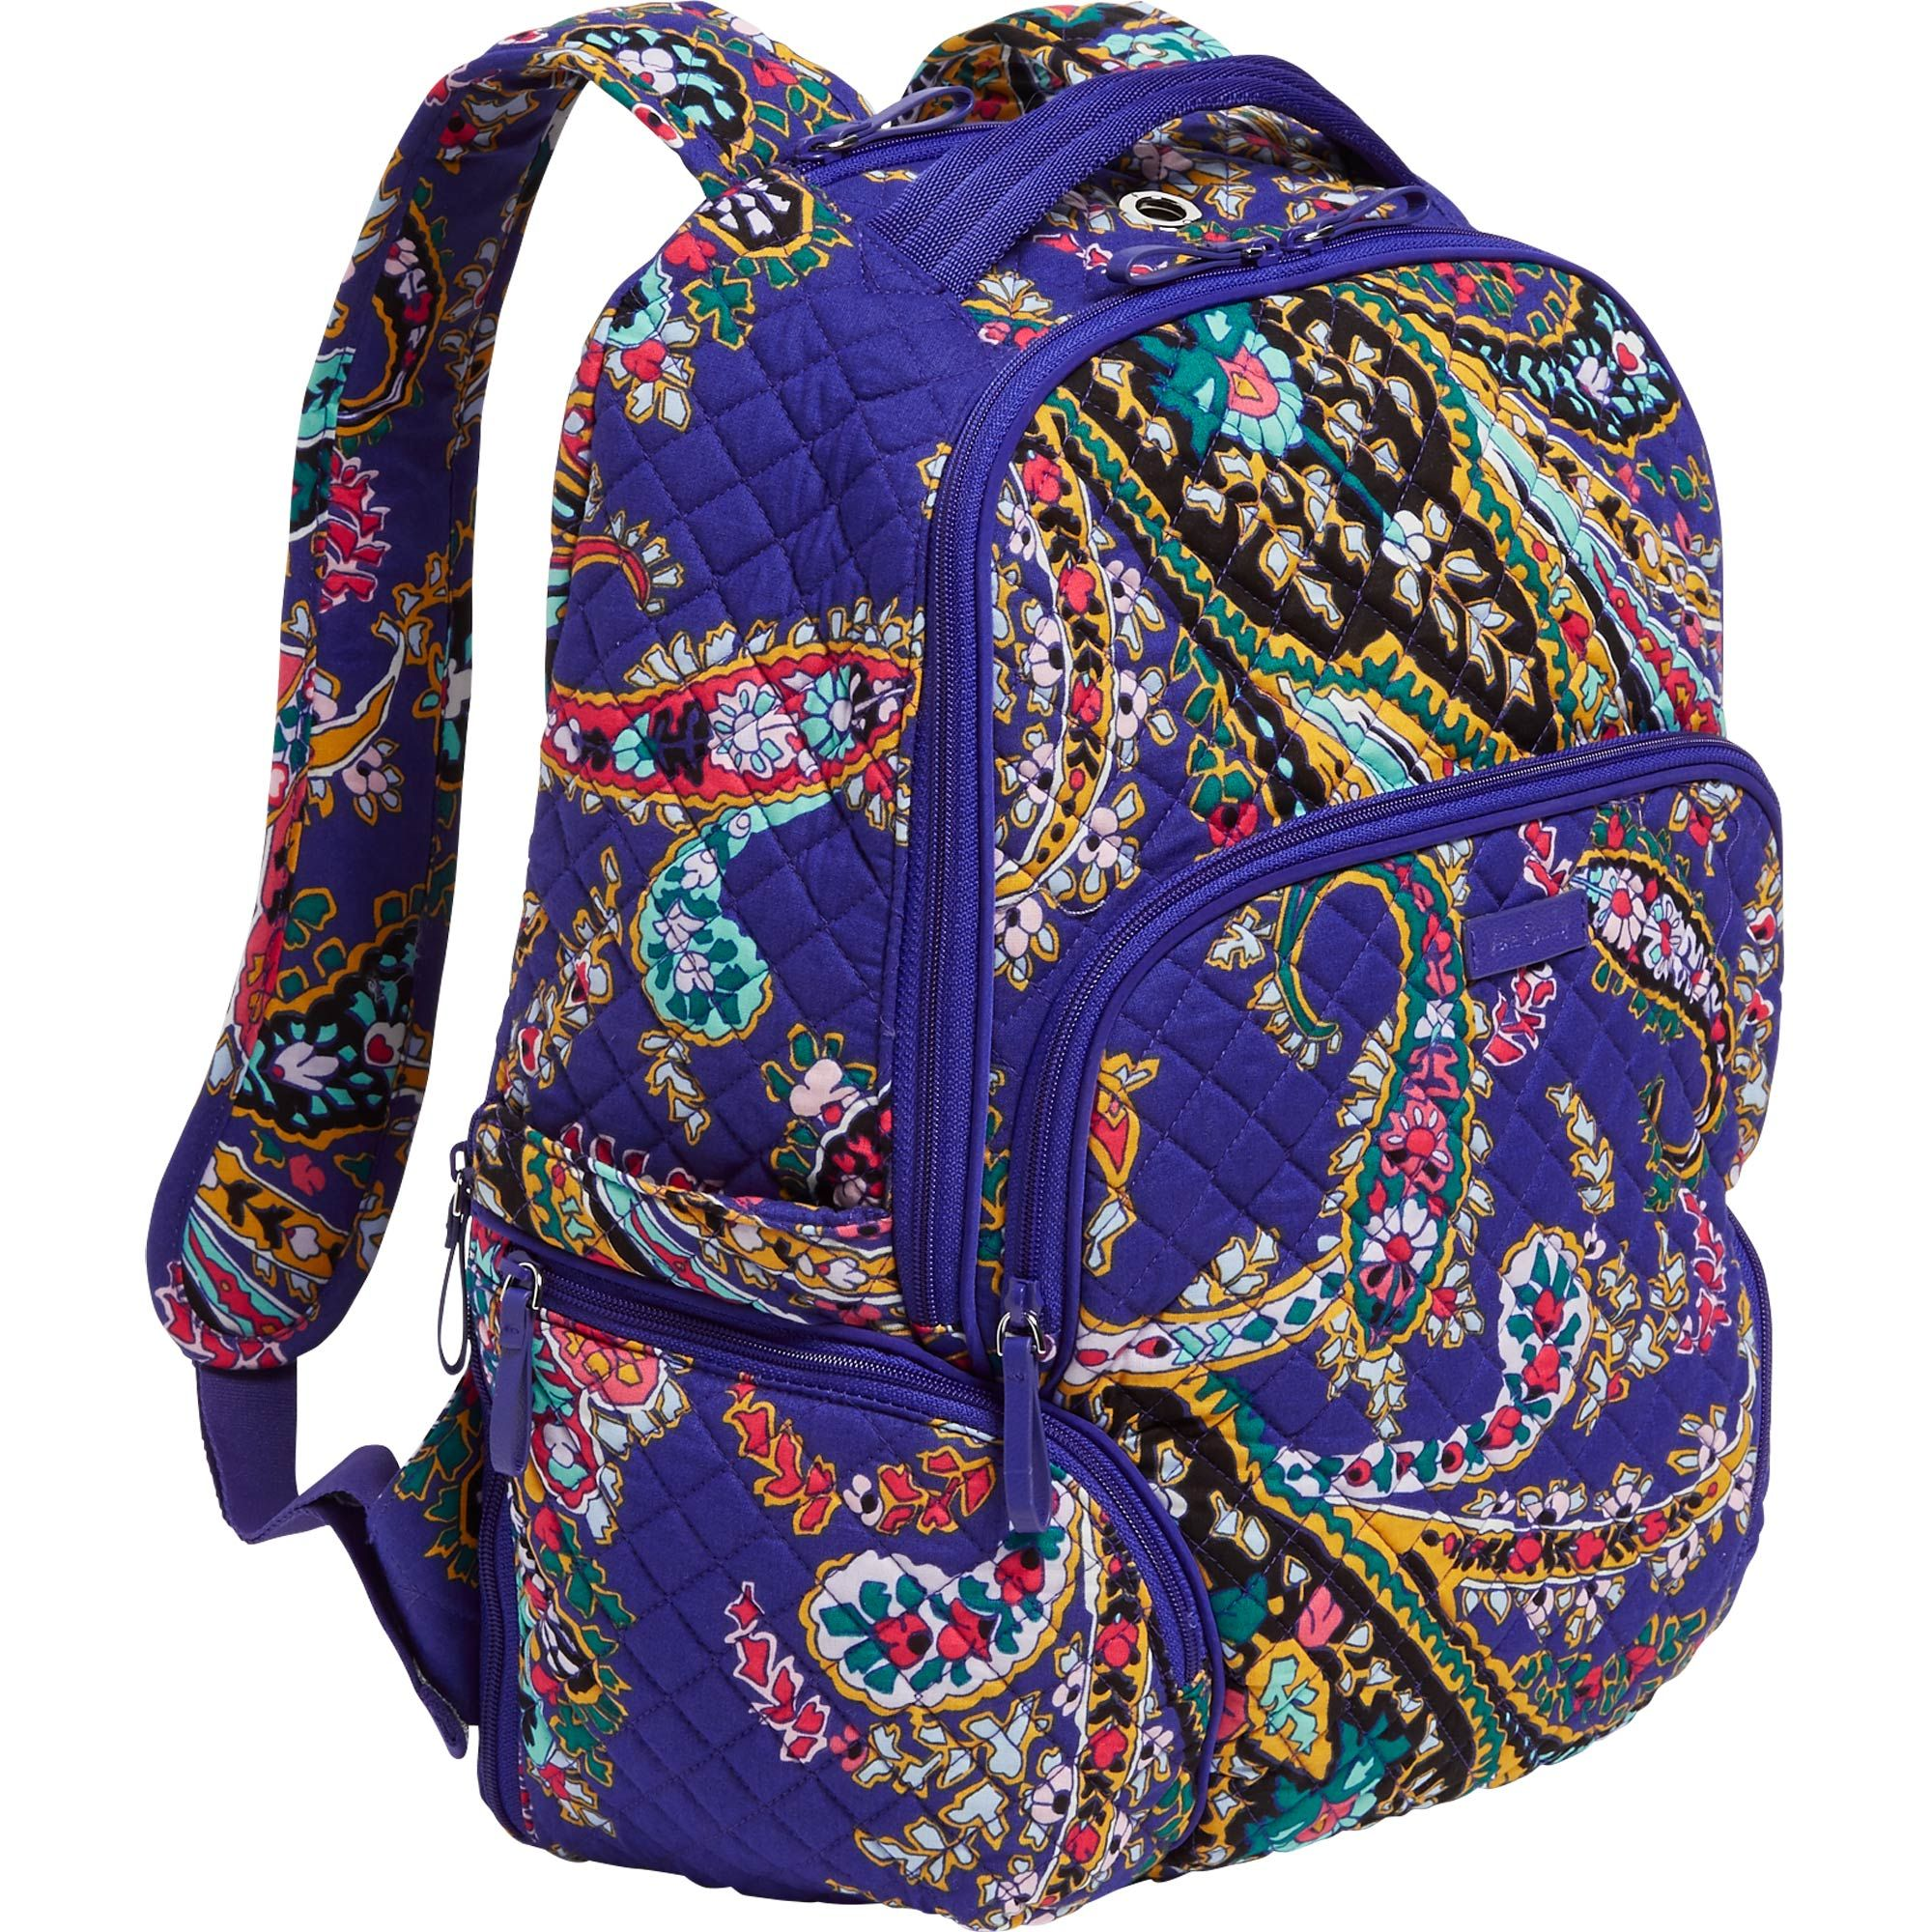 Vera Bradley - Iconic Campus Backpack - Romantic Paisley. Perfect for campus 715512838574b